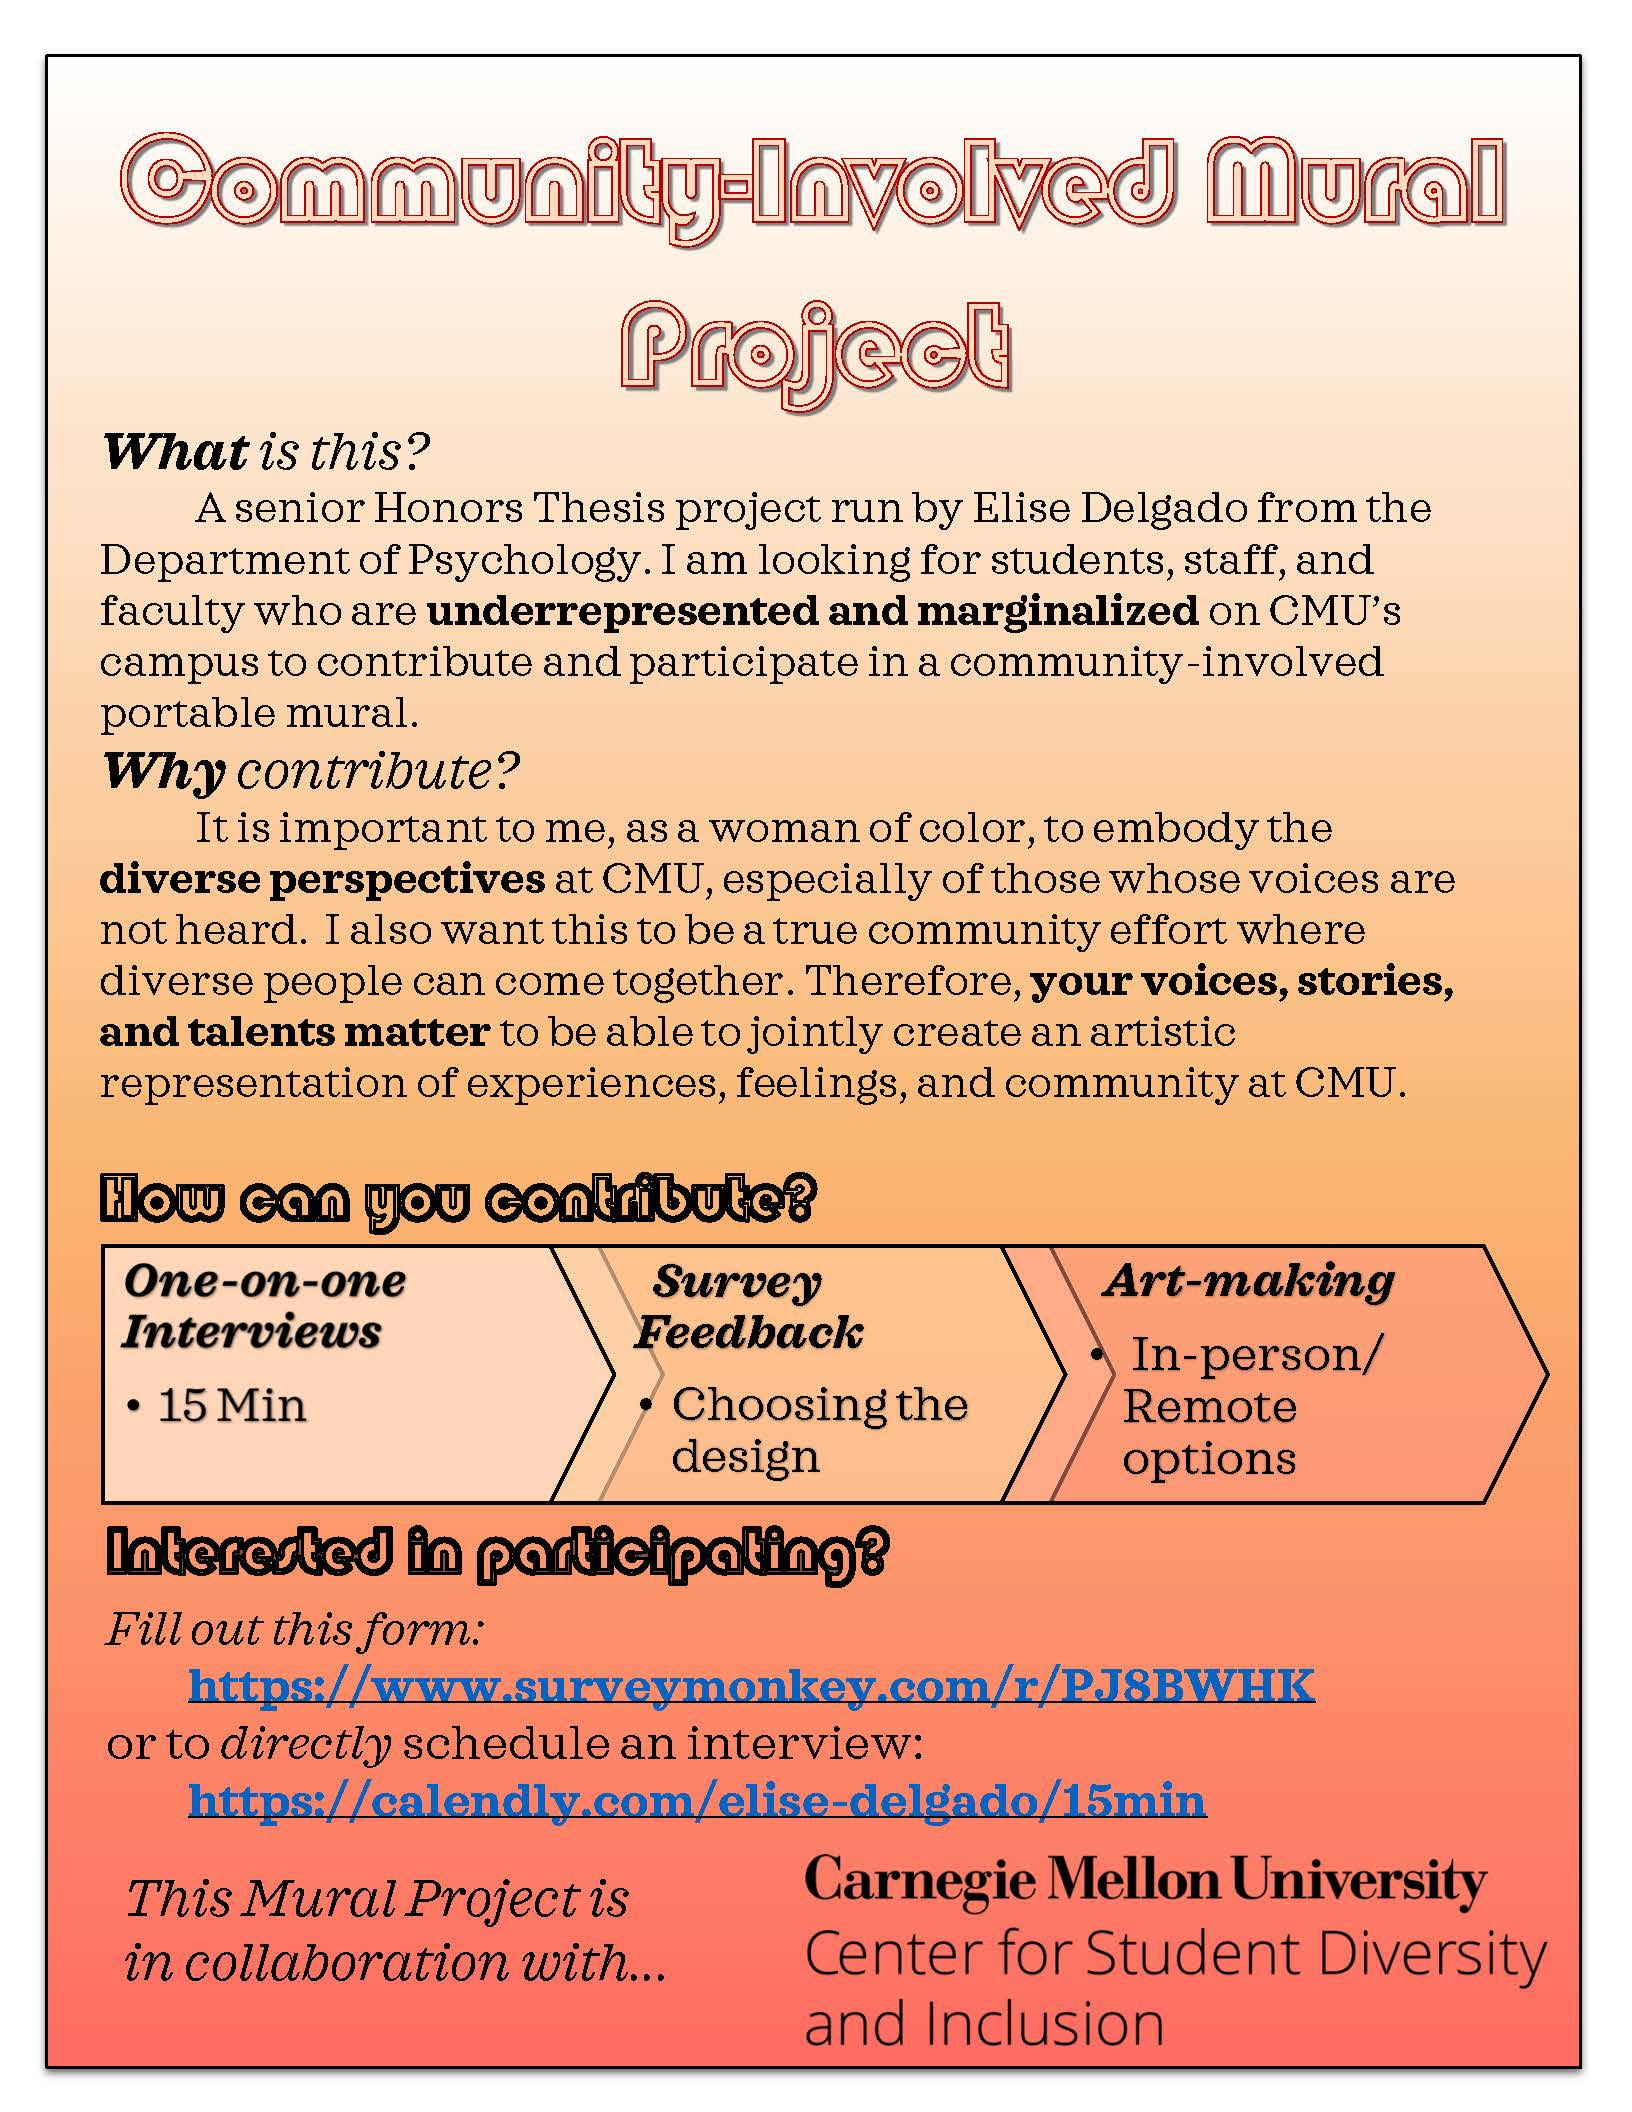 Flyer for Community-Involved Mural Project